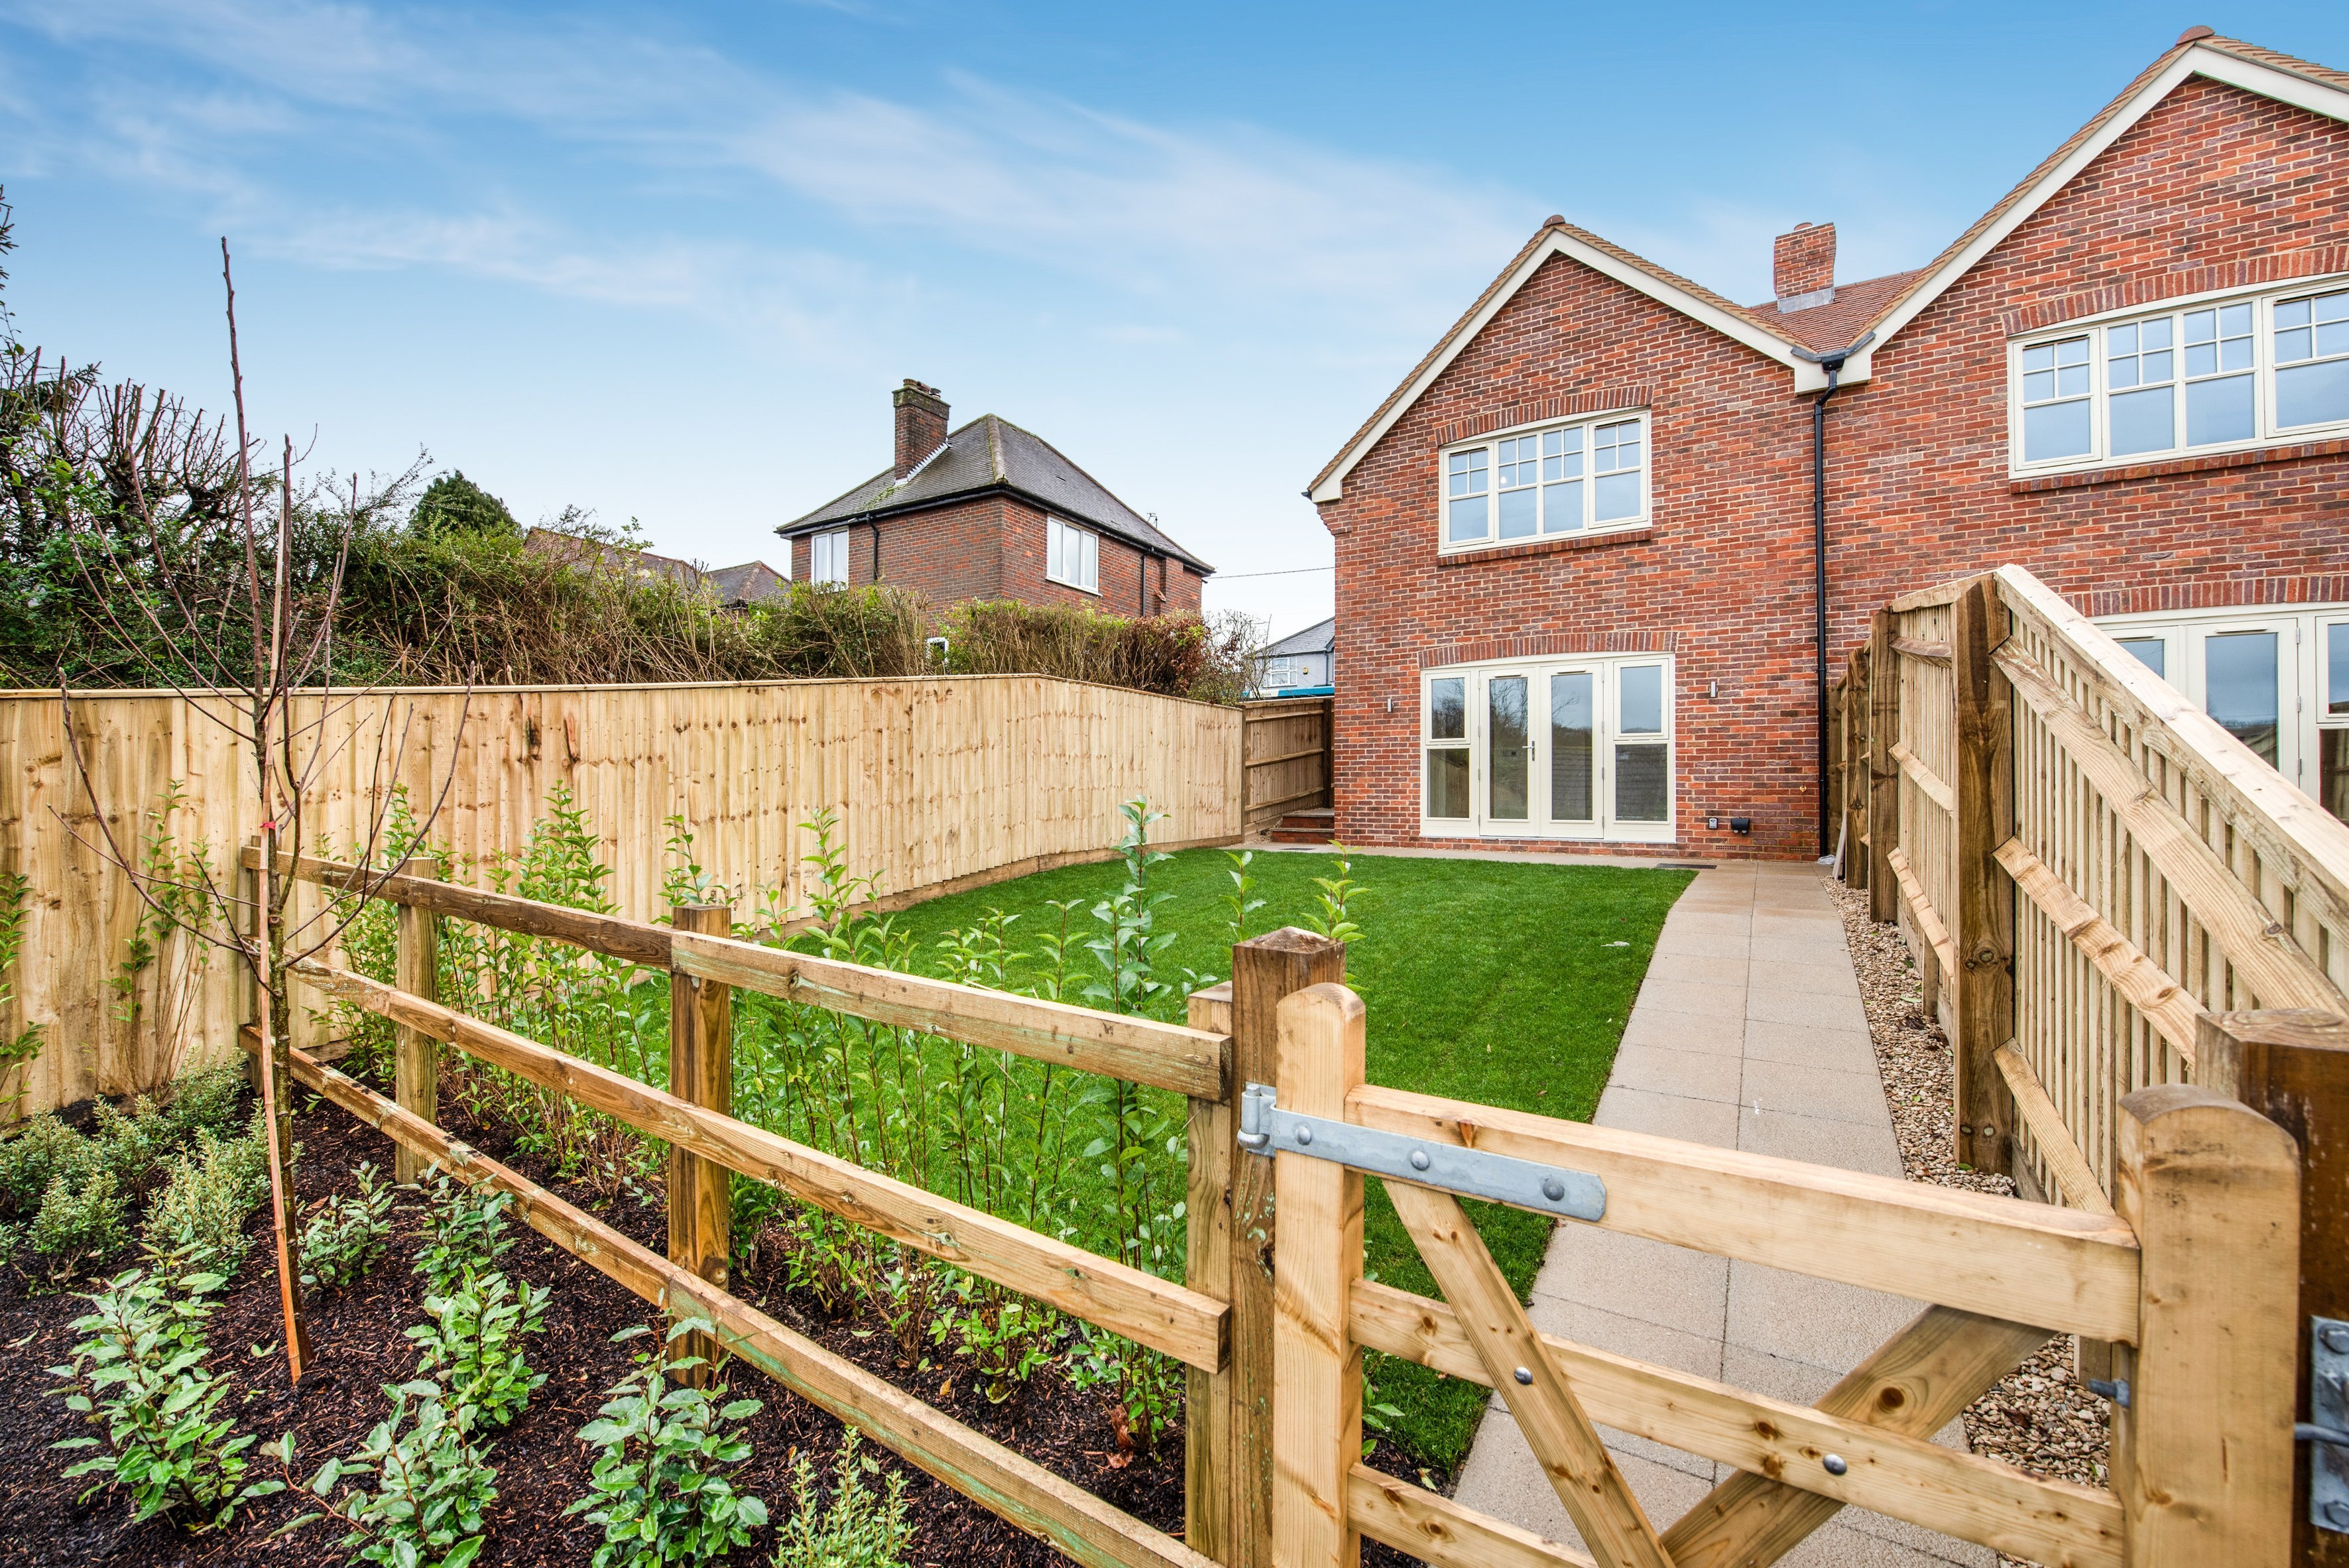 2494996858429 Properties two and three are available now. For a viewing please contact JNP  New Homes on 01494 521222 or email newhomes jnp.co.uk